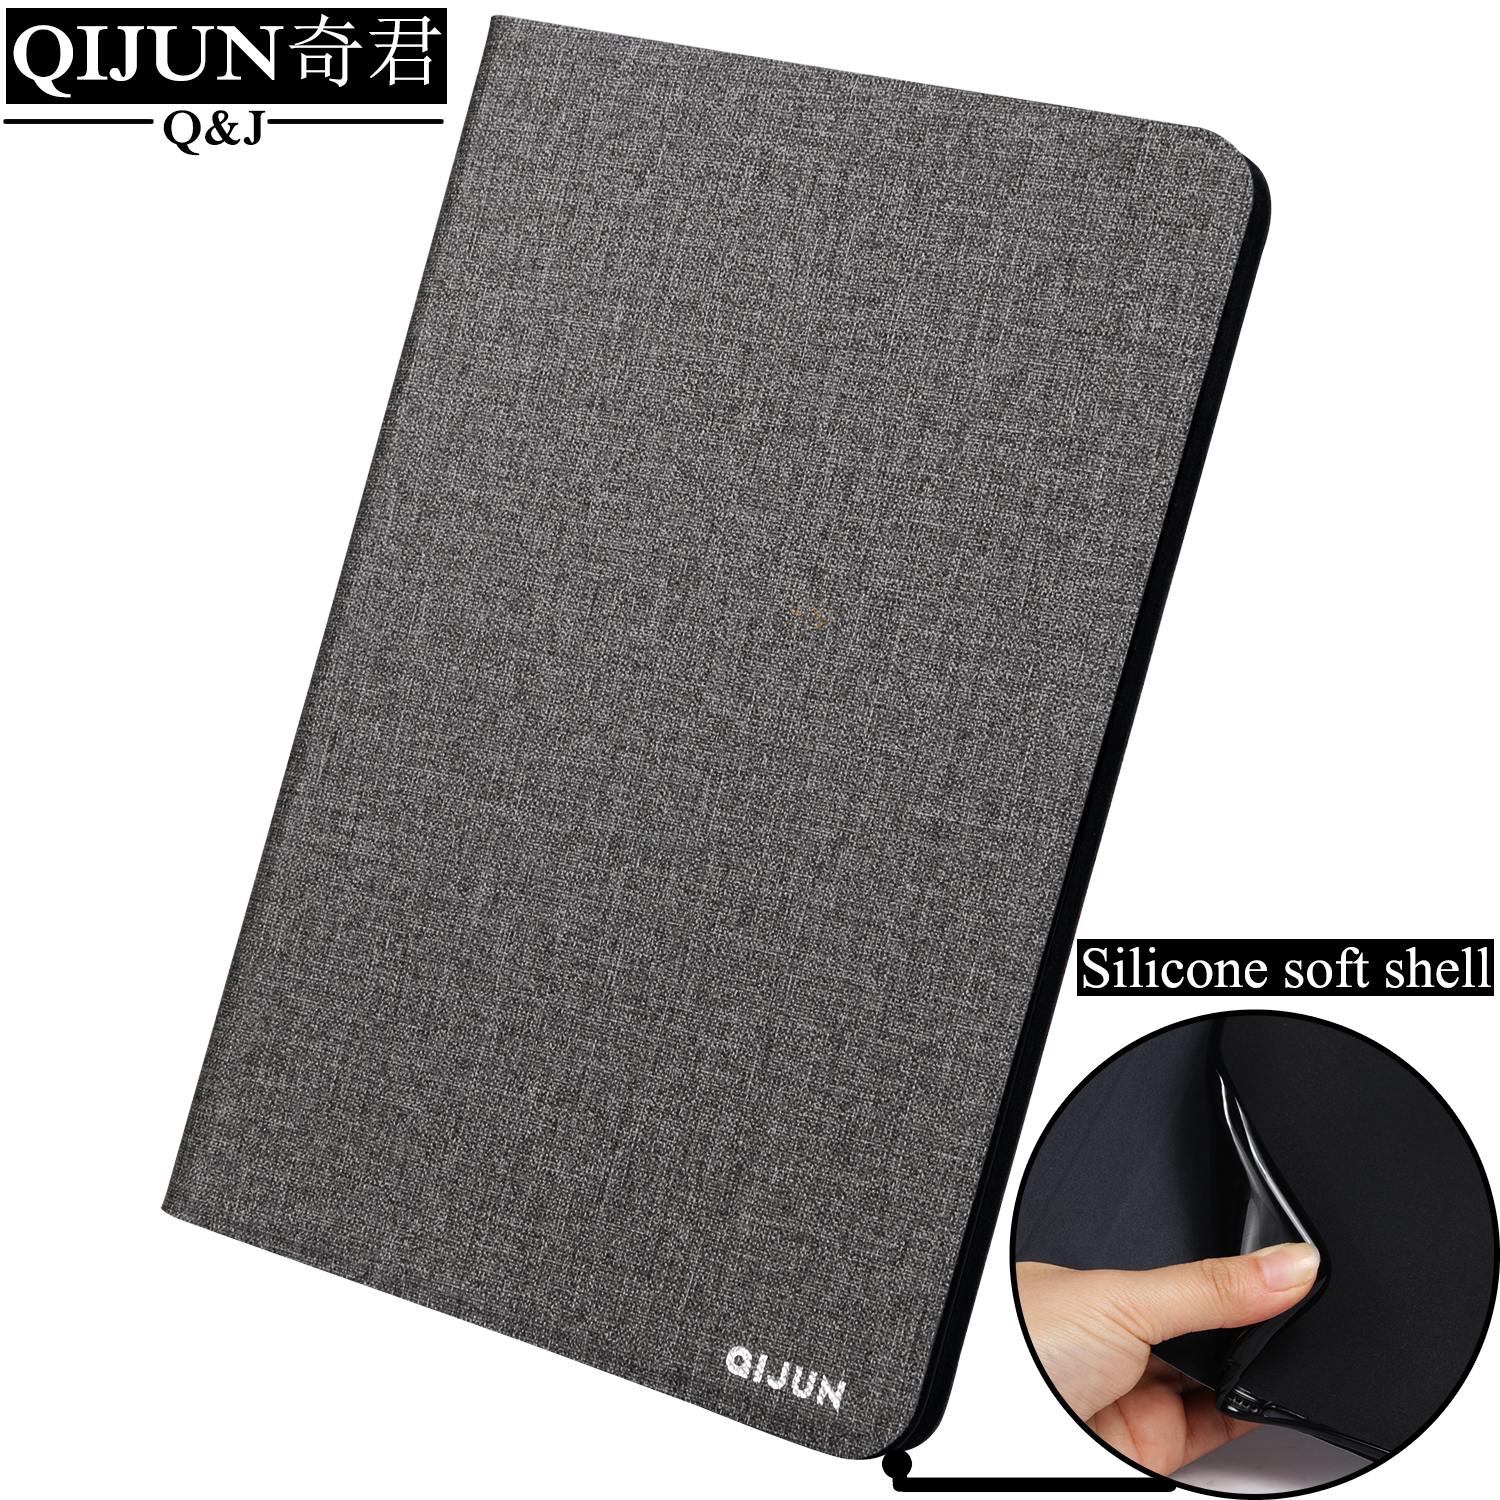 Flip PU Leather case For Huawei MediaPad T1 10 9.6-inch Pro fundas Protective Stand Cover Soft Shell capa skin for T1-A21W/L